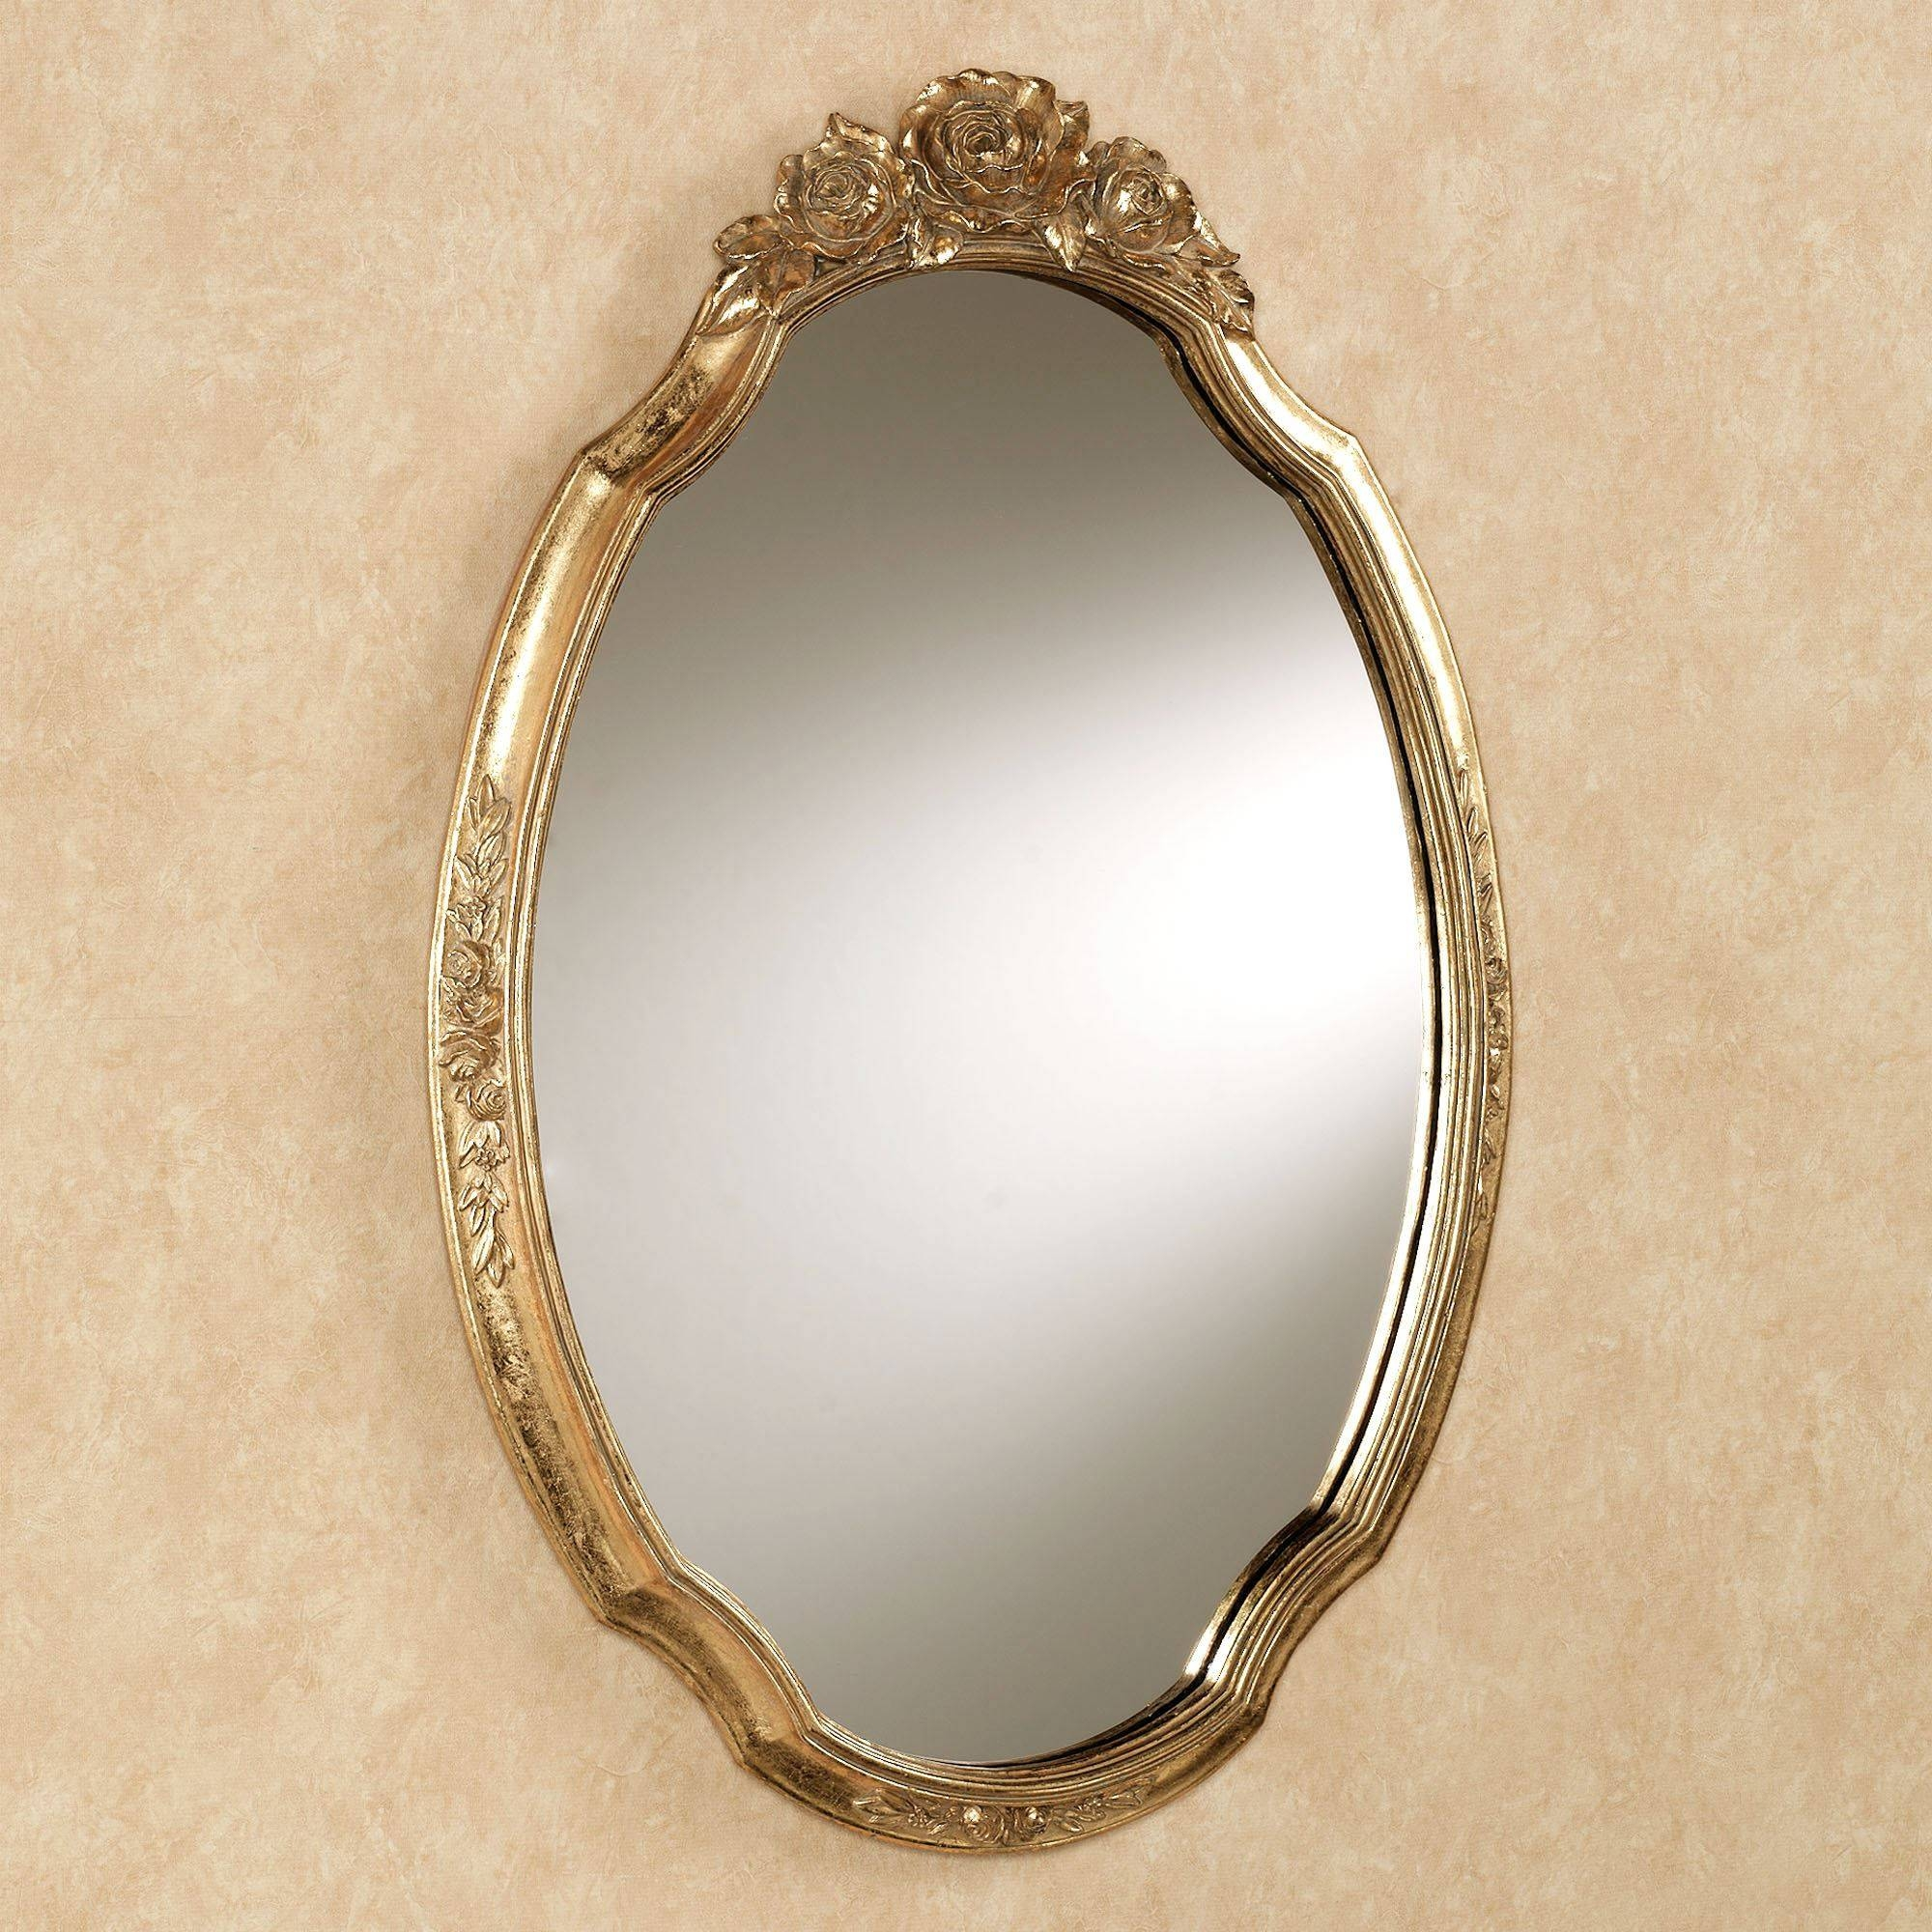 Jorah Rose Oval Wall Mirror Intended For Gold Wall Mirrors (View 8 of 15)